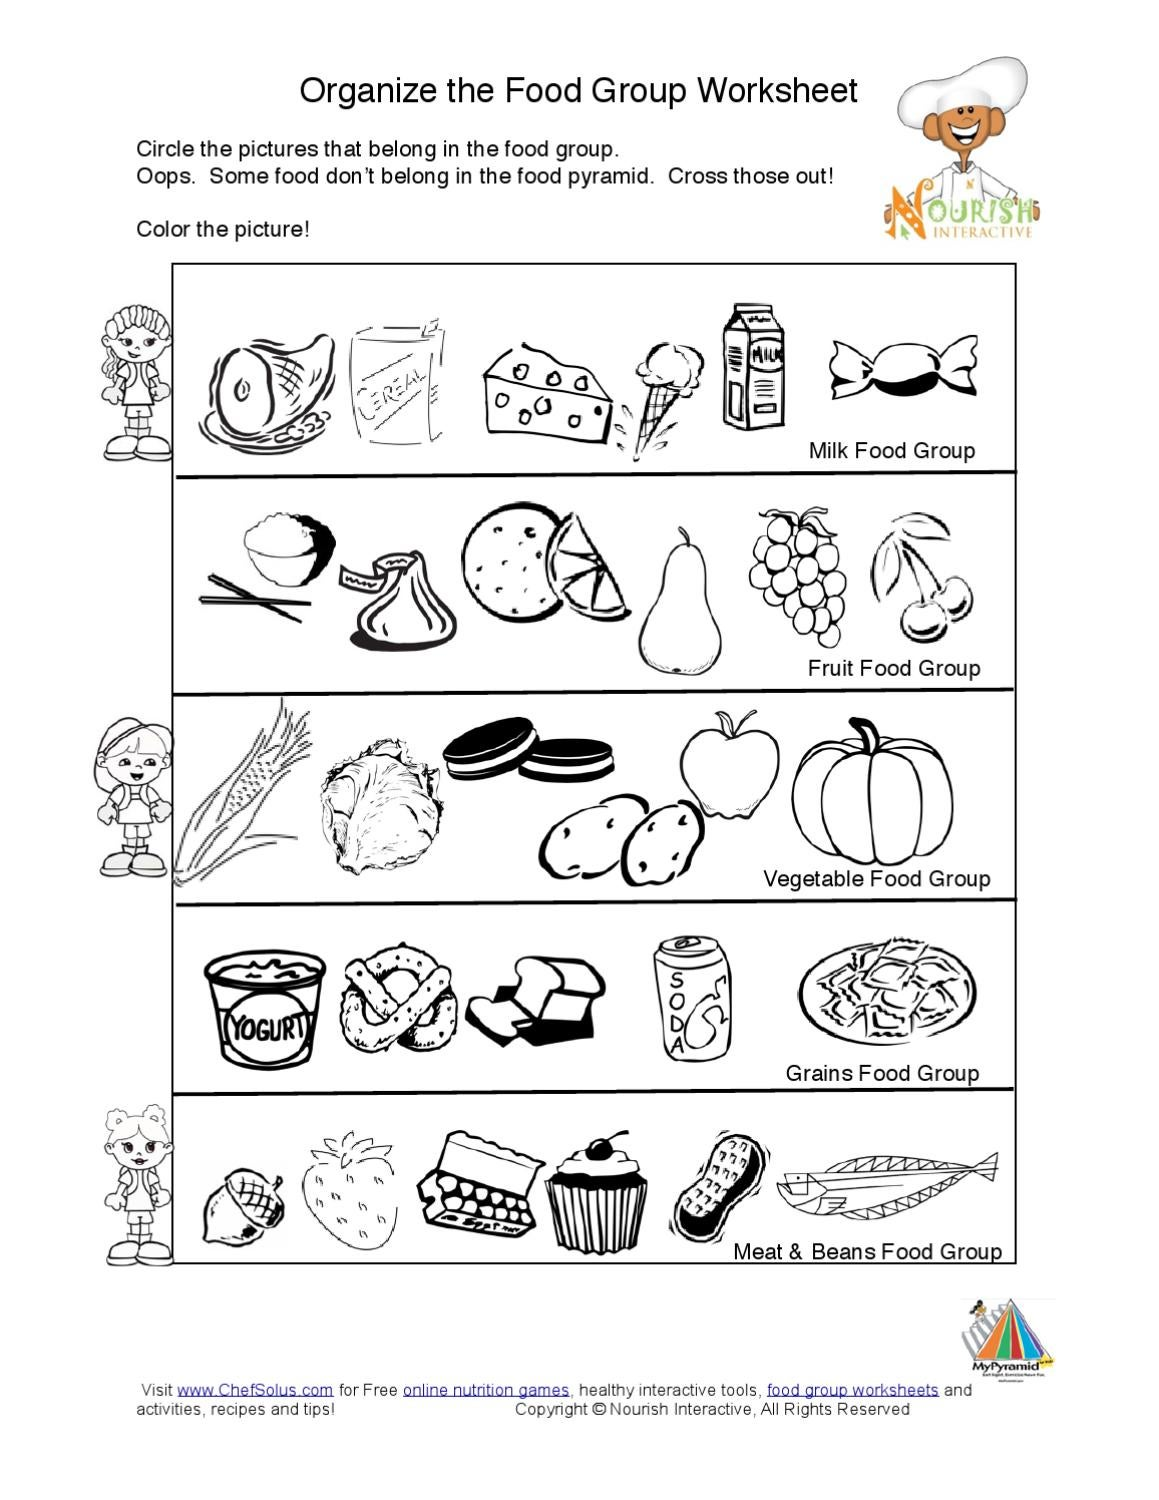 Worksheets Nutrition Worksheets For Kids kids food pyramid groups learning nutrition worksheet k 5 elementary school by nieves hita issuu